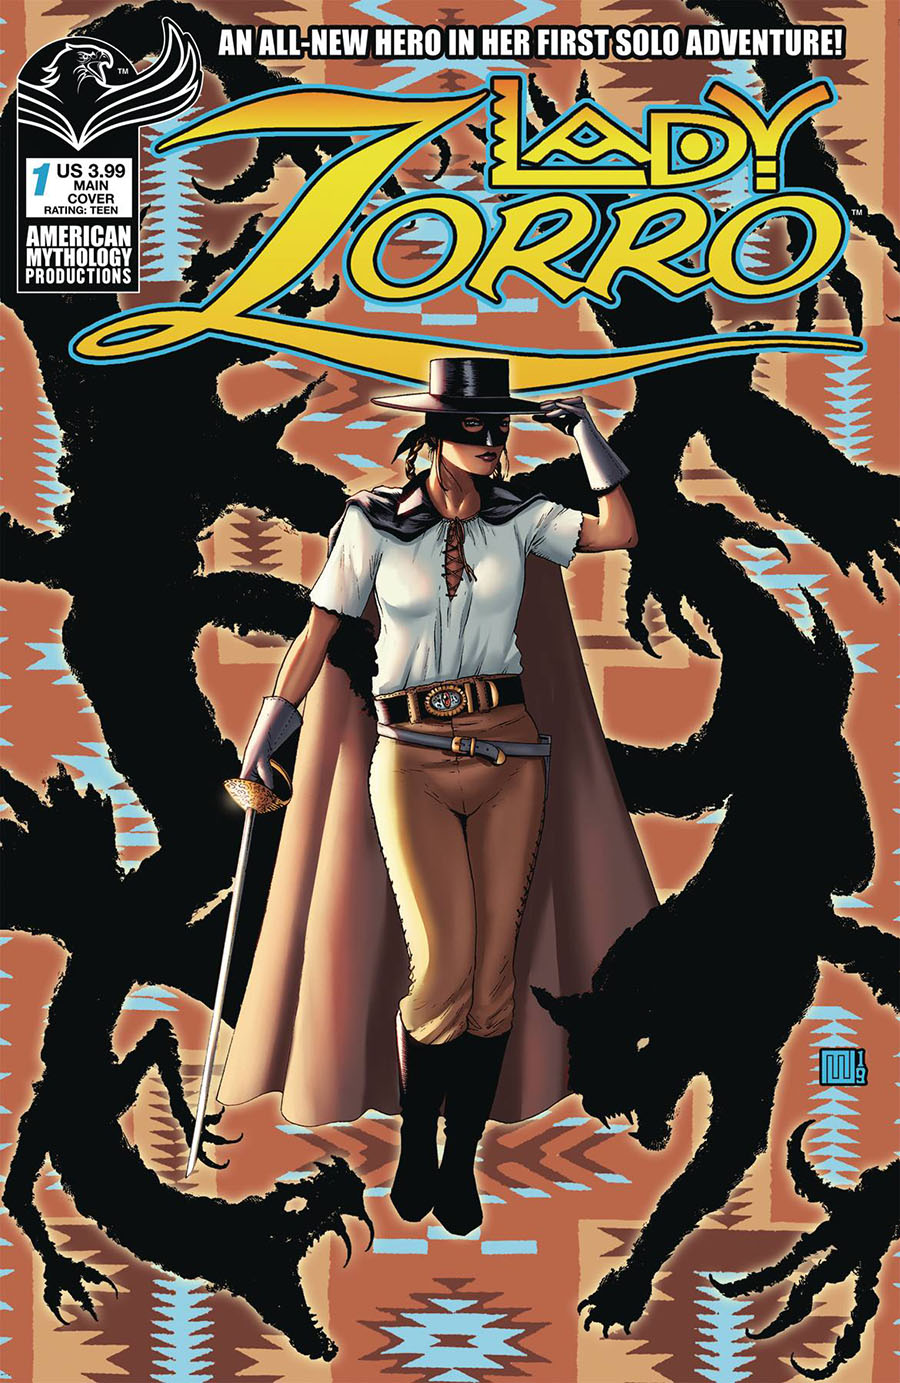 Lady Zorro Vol 2 #1 Cover A Regular Mike Wolfer Cover